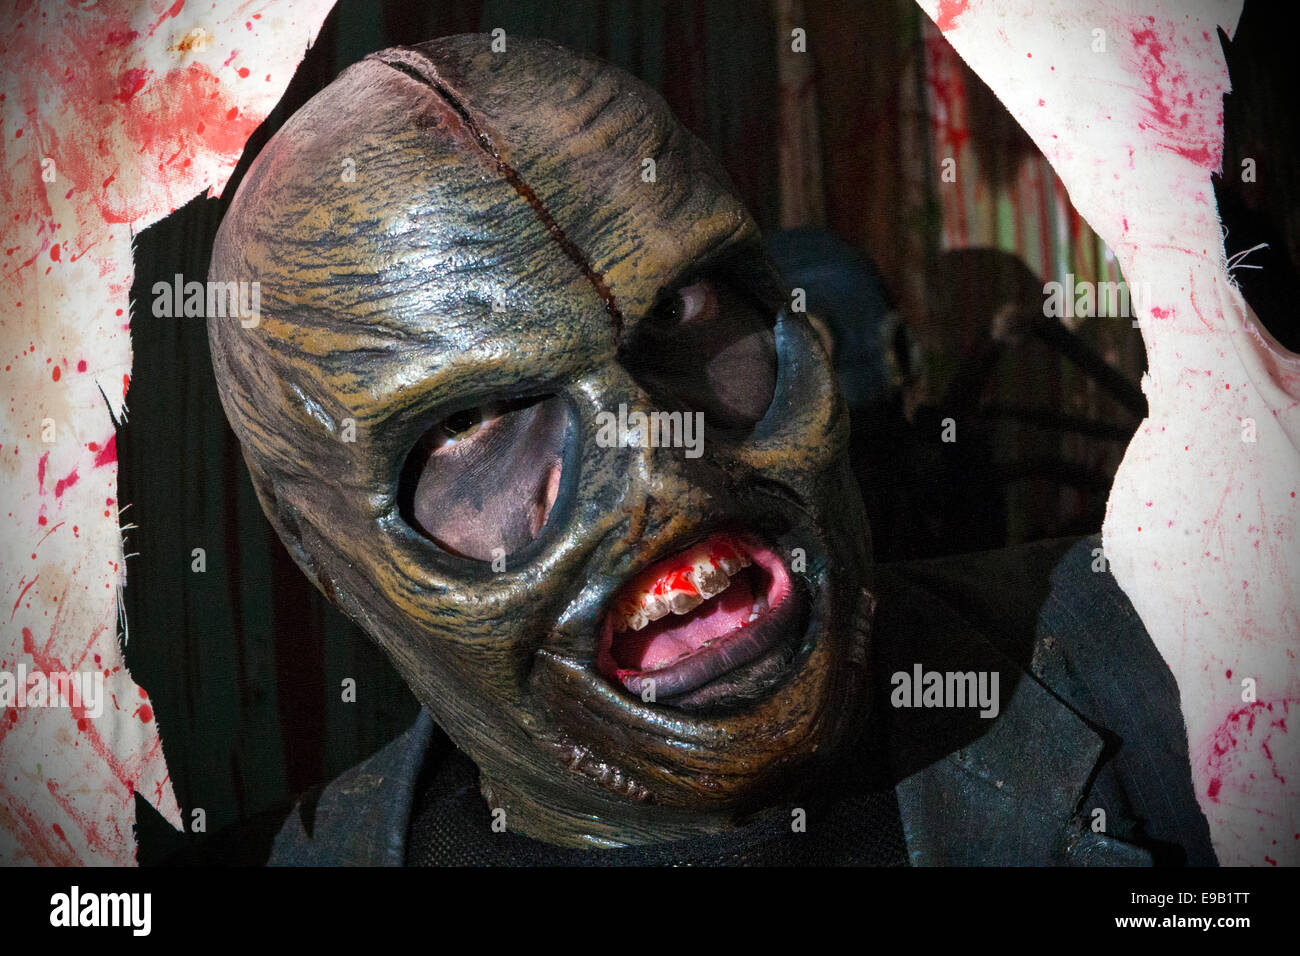 Blackburn, UK. 22nd Oct, 2014. Masked Horror & Halloween costumed ...